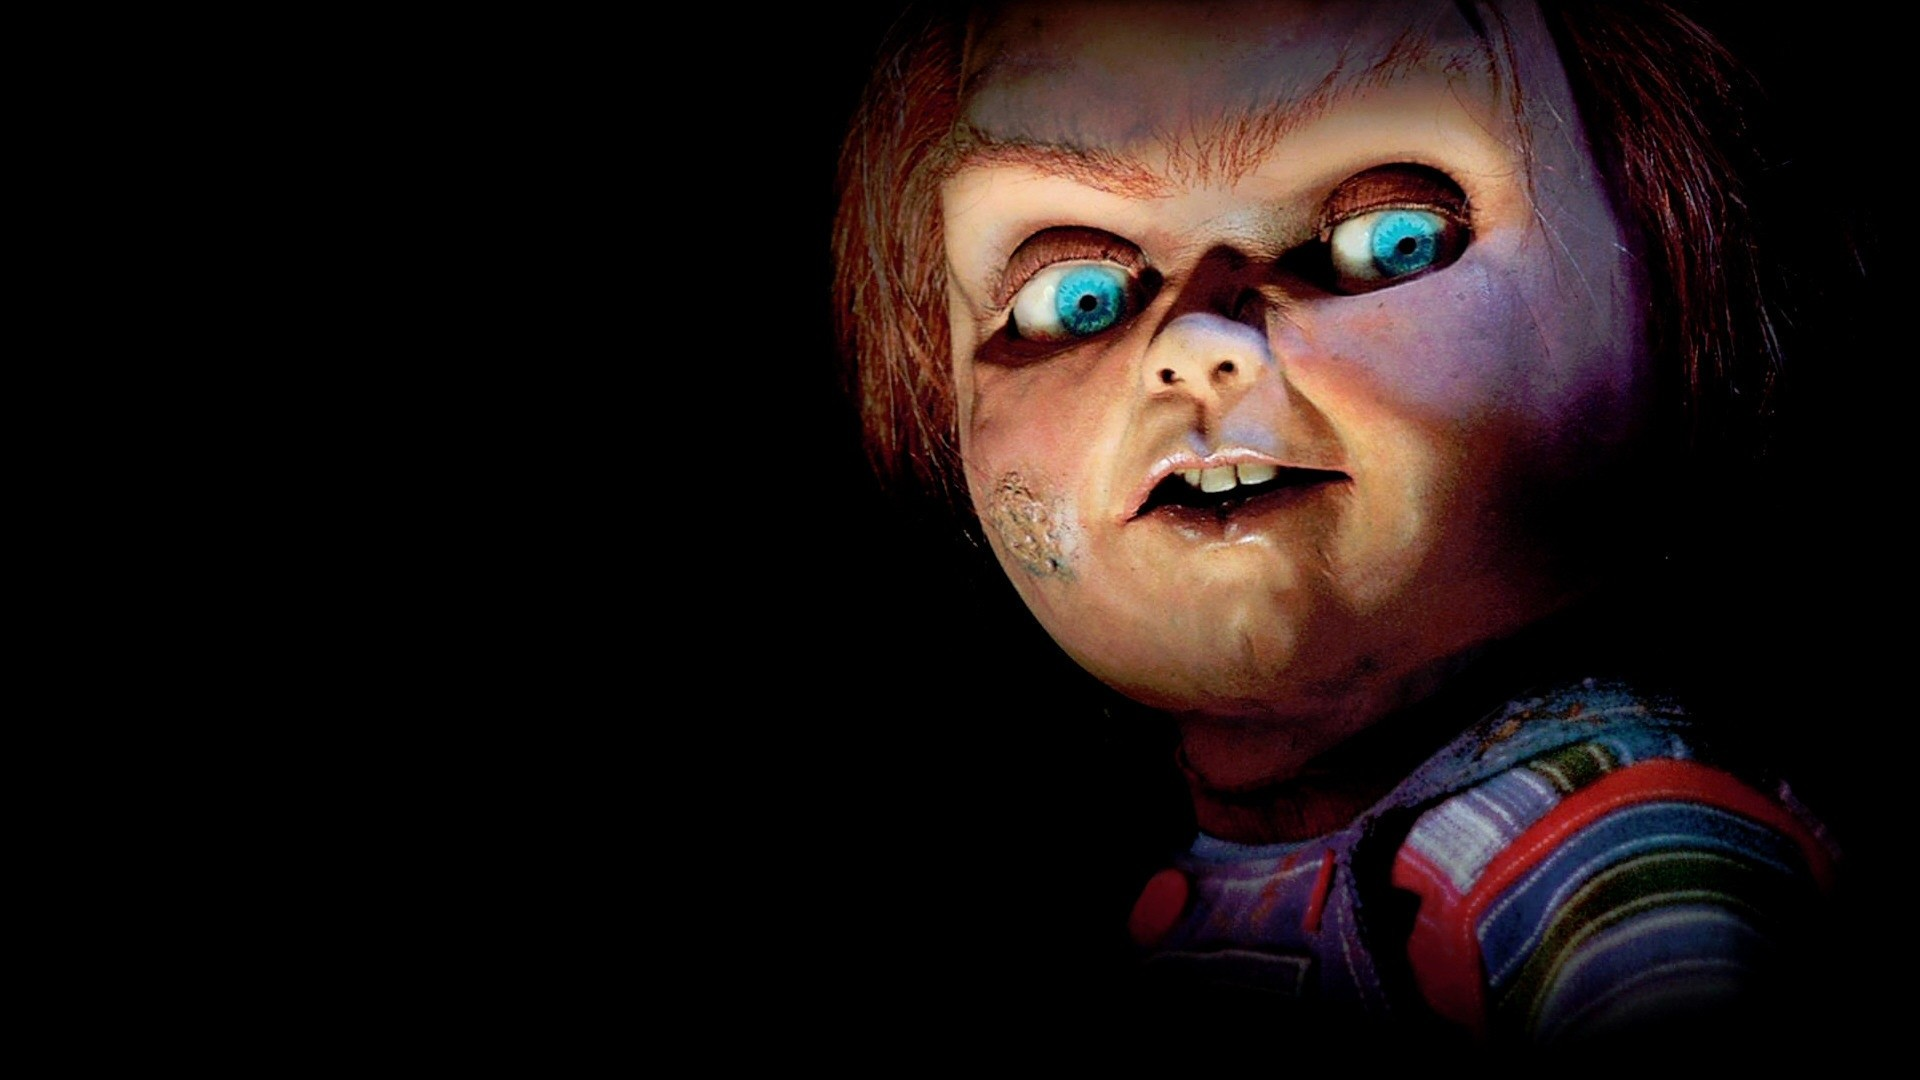 Chucky Childs Play HD wallpapers – Chucky Childs Play